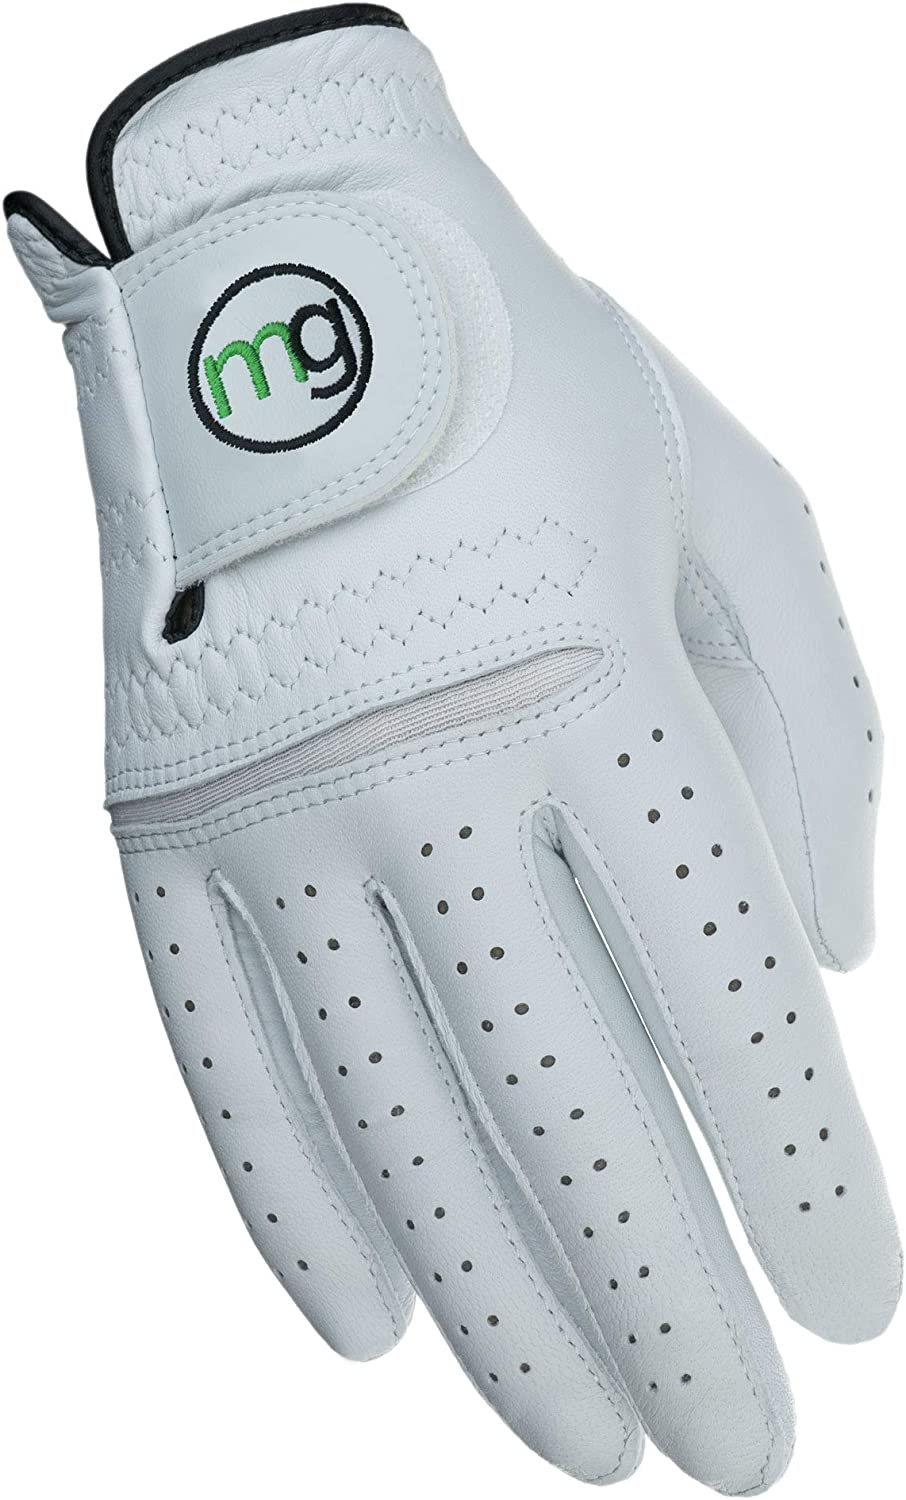 MG Golf Glove Mens DynaGrip Elite All-Cabretta Leather (Regular Sizes)